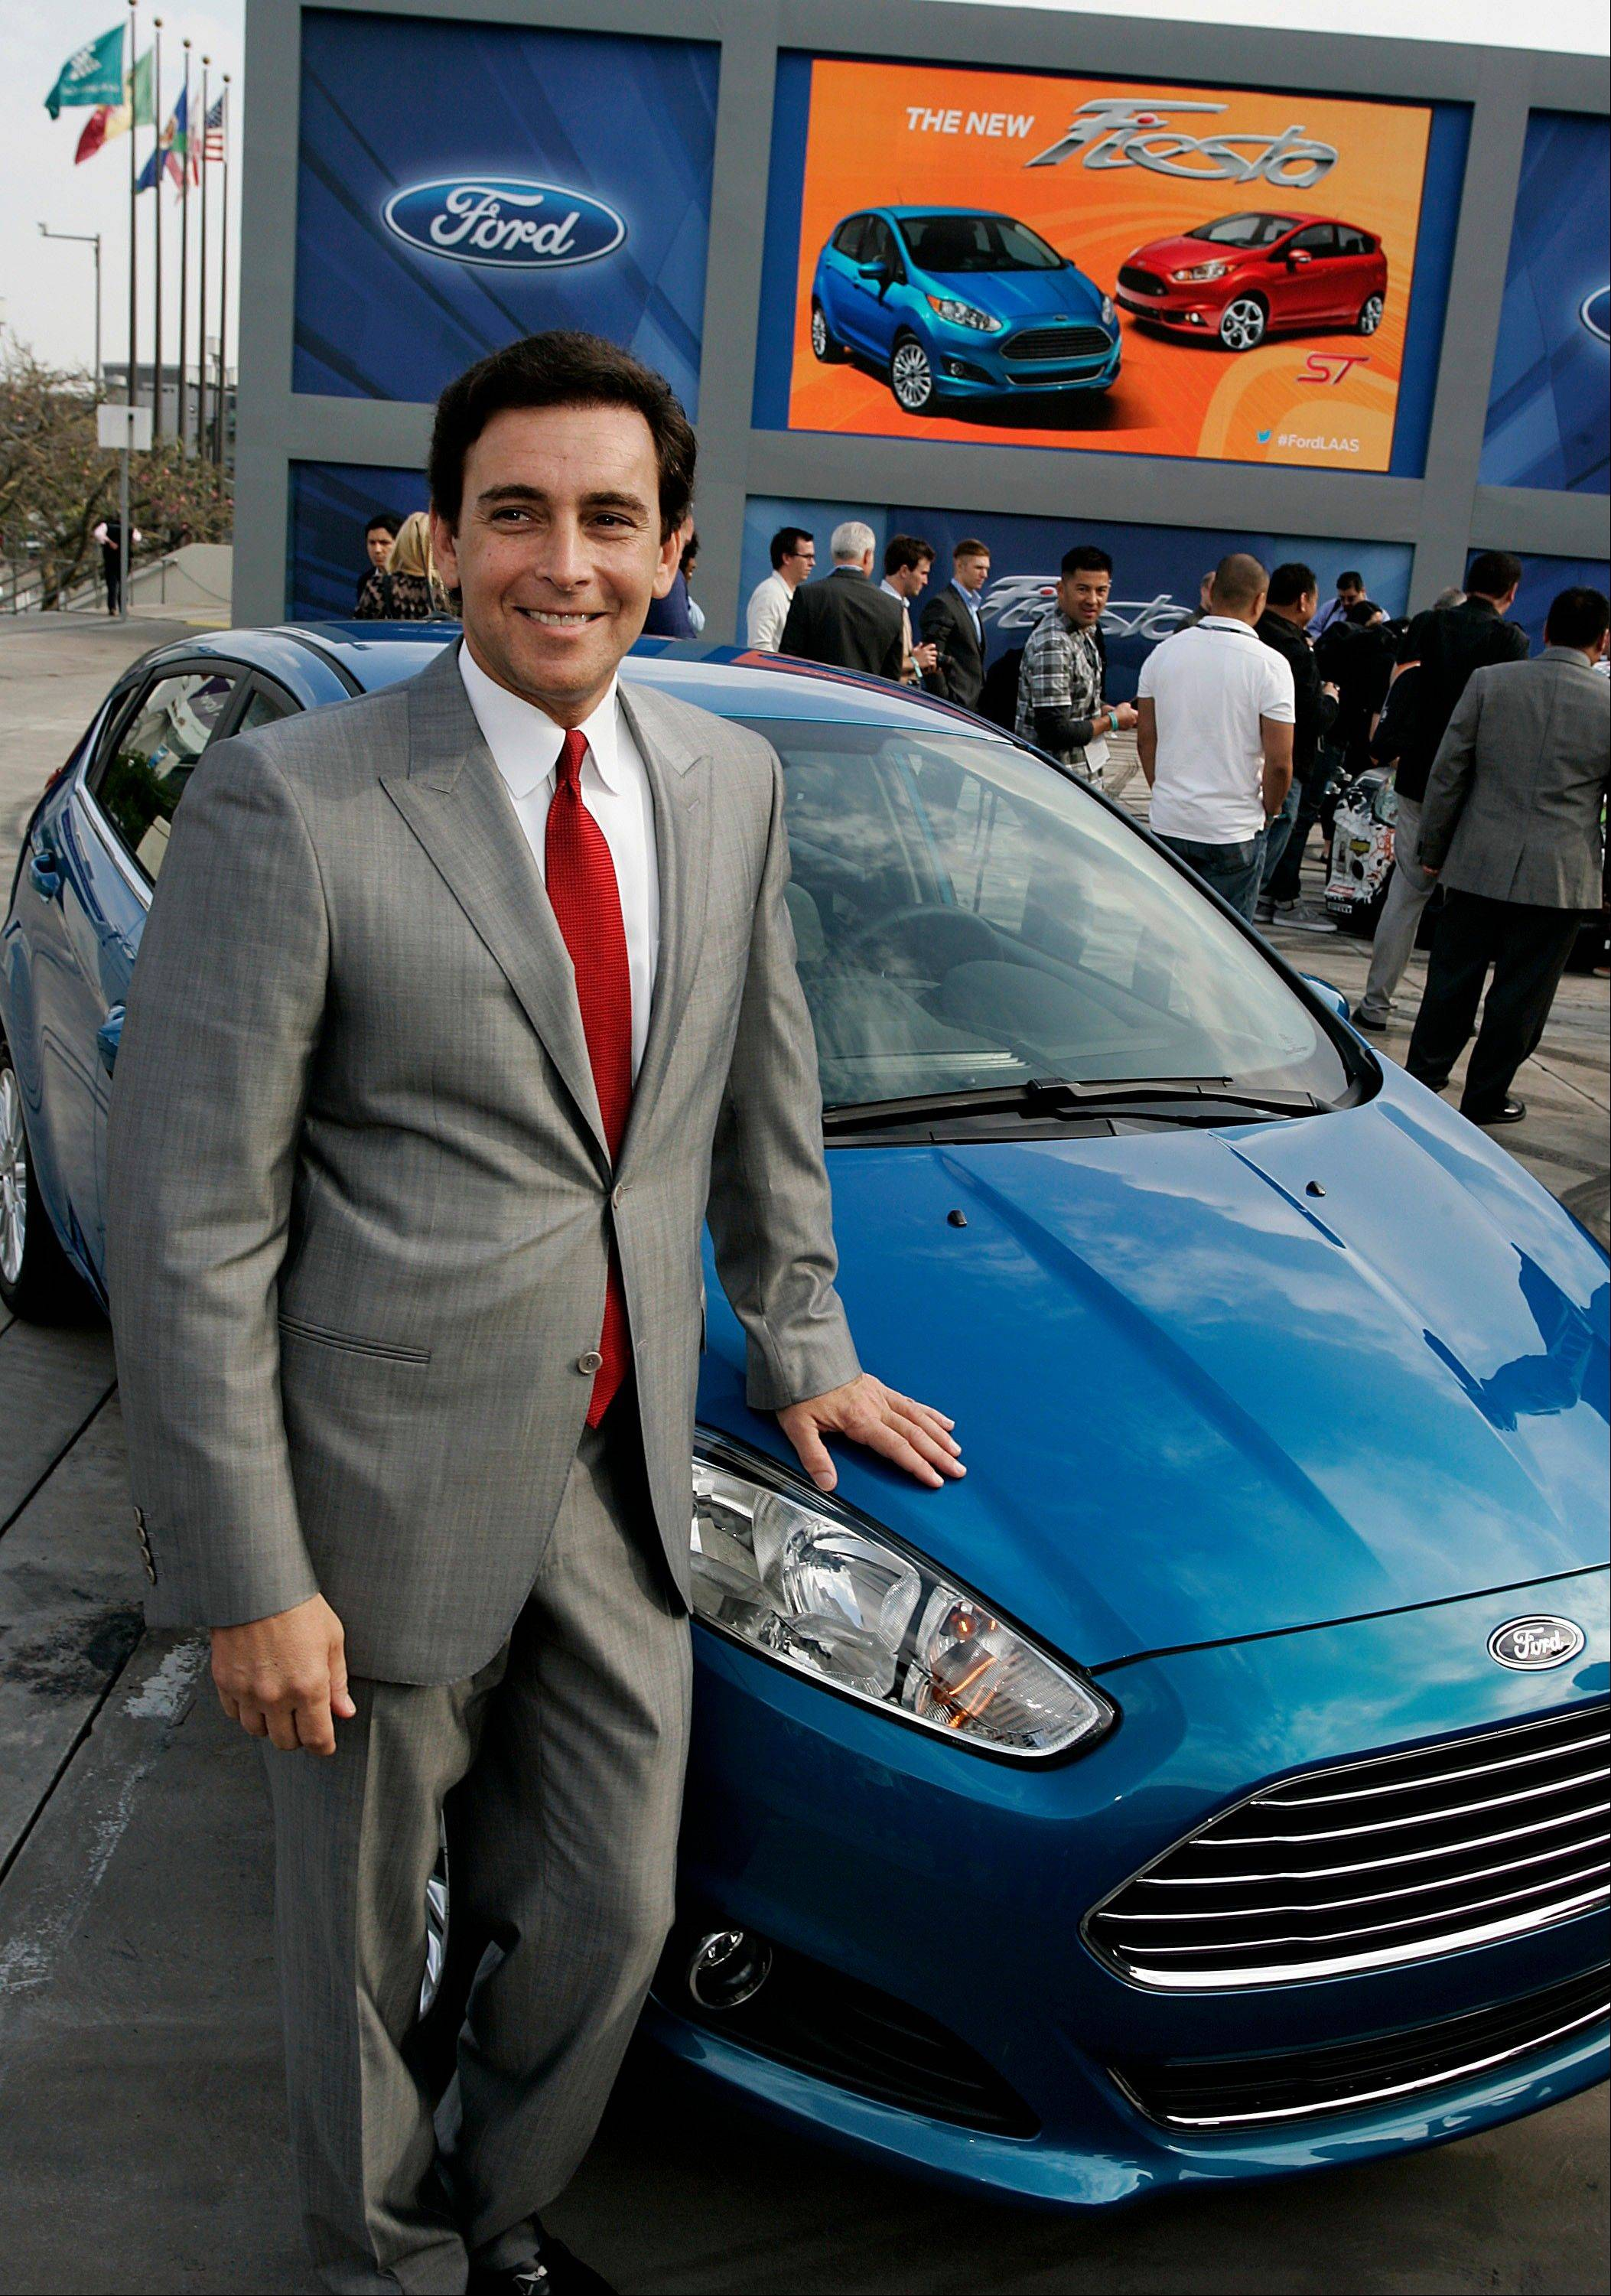 Mark Fields, incoming chief operating officer of Ford Motor Co., stands for a photograph with the Fiesta ST hatchback vehicle during the LA Auto Show in Los Angeles last Wednesday, Nov. 28.